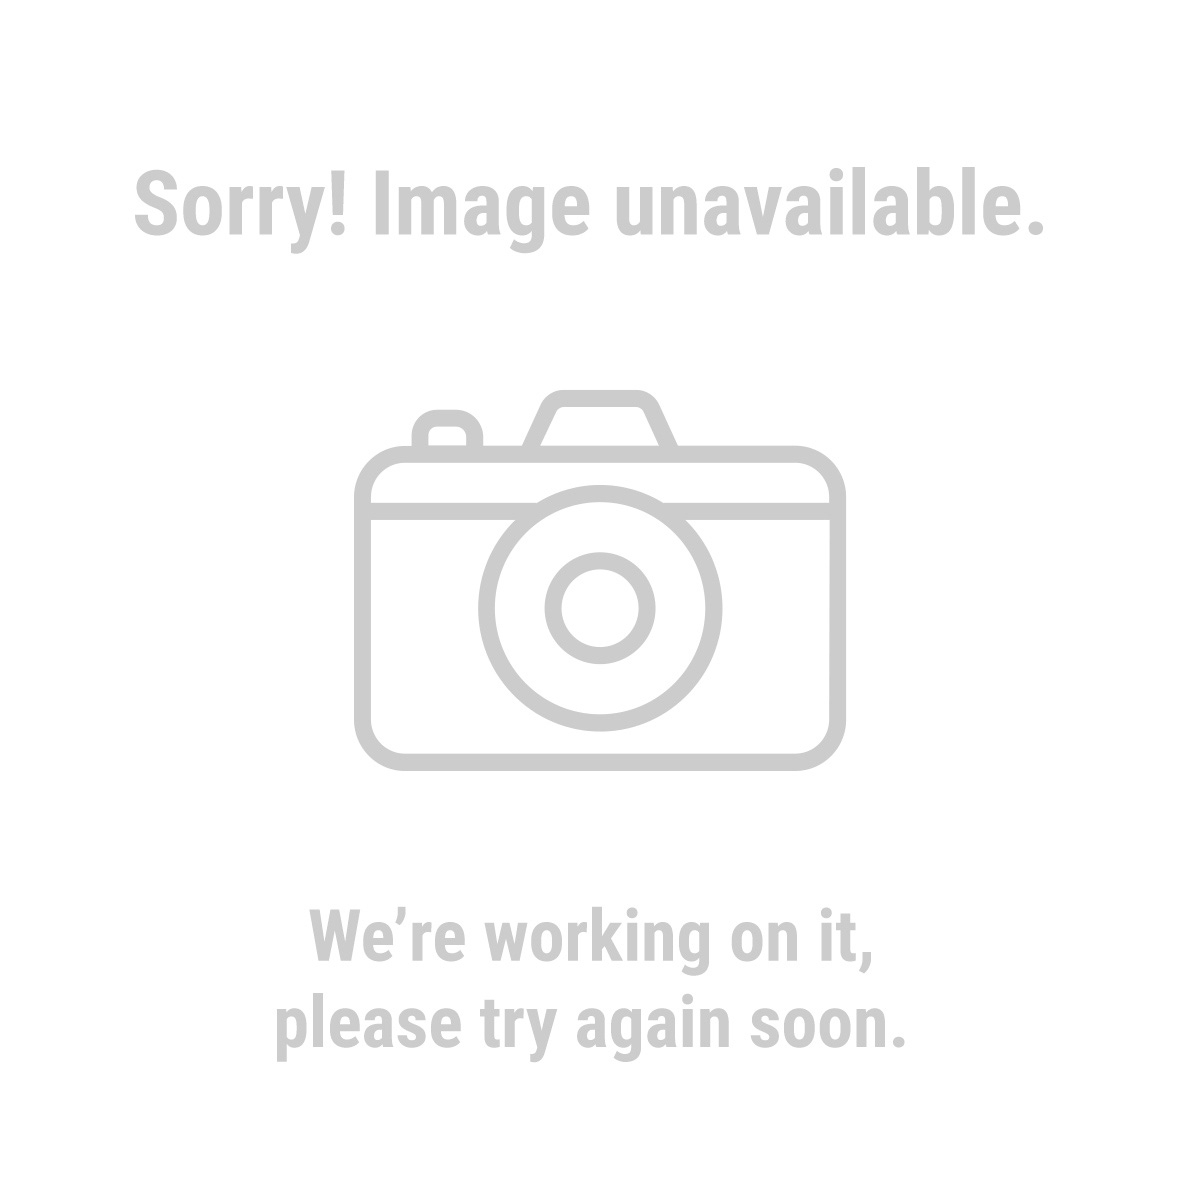 Haul-Master® 62755 3/8 in. x 10 ft. Diamond Braid Rope